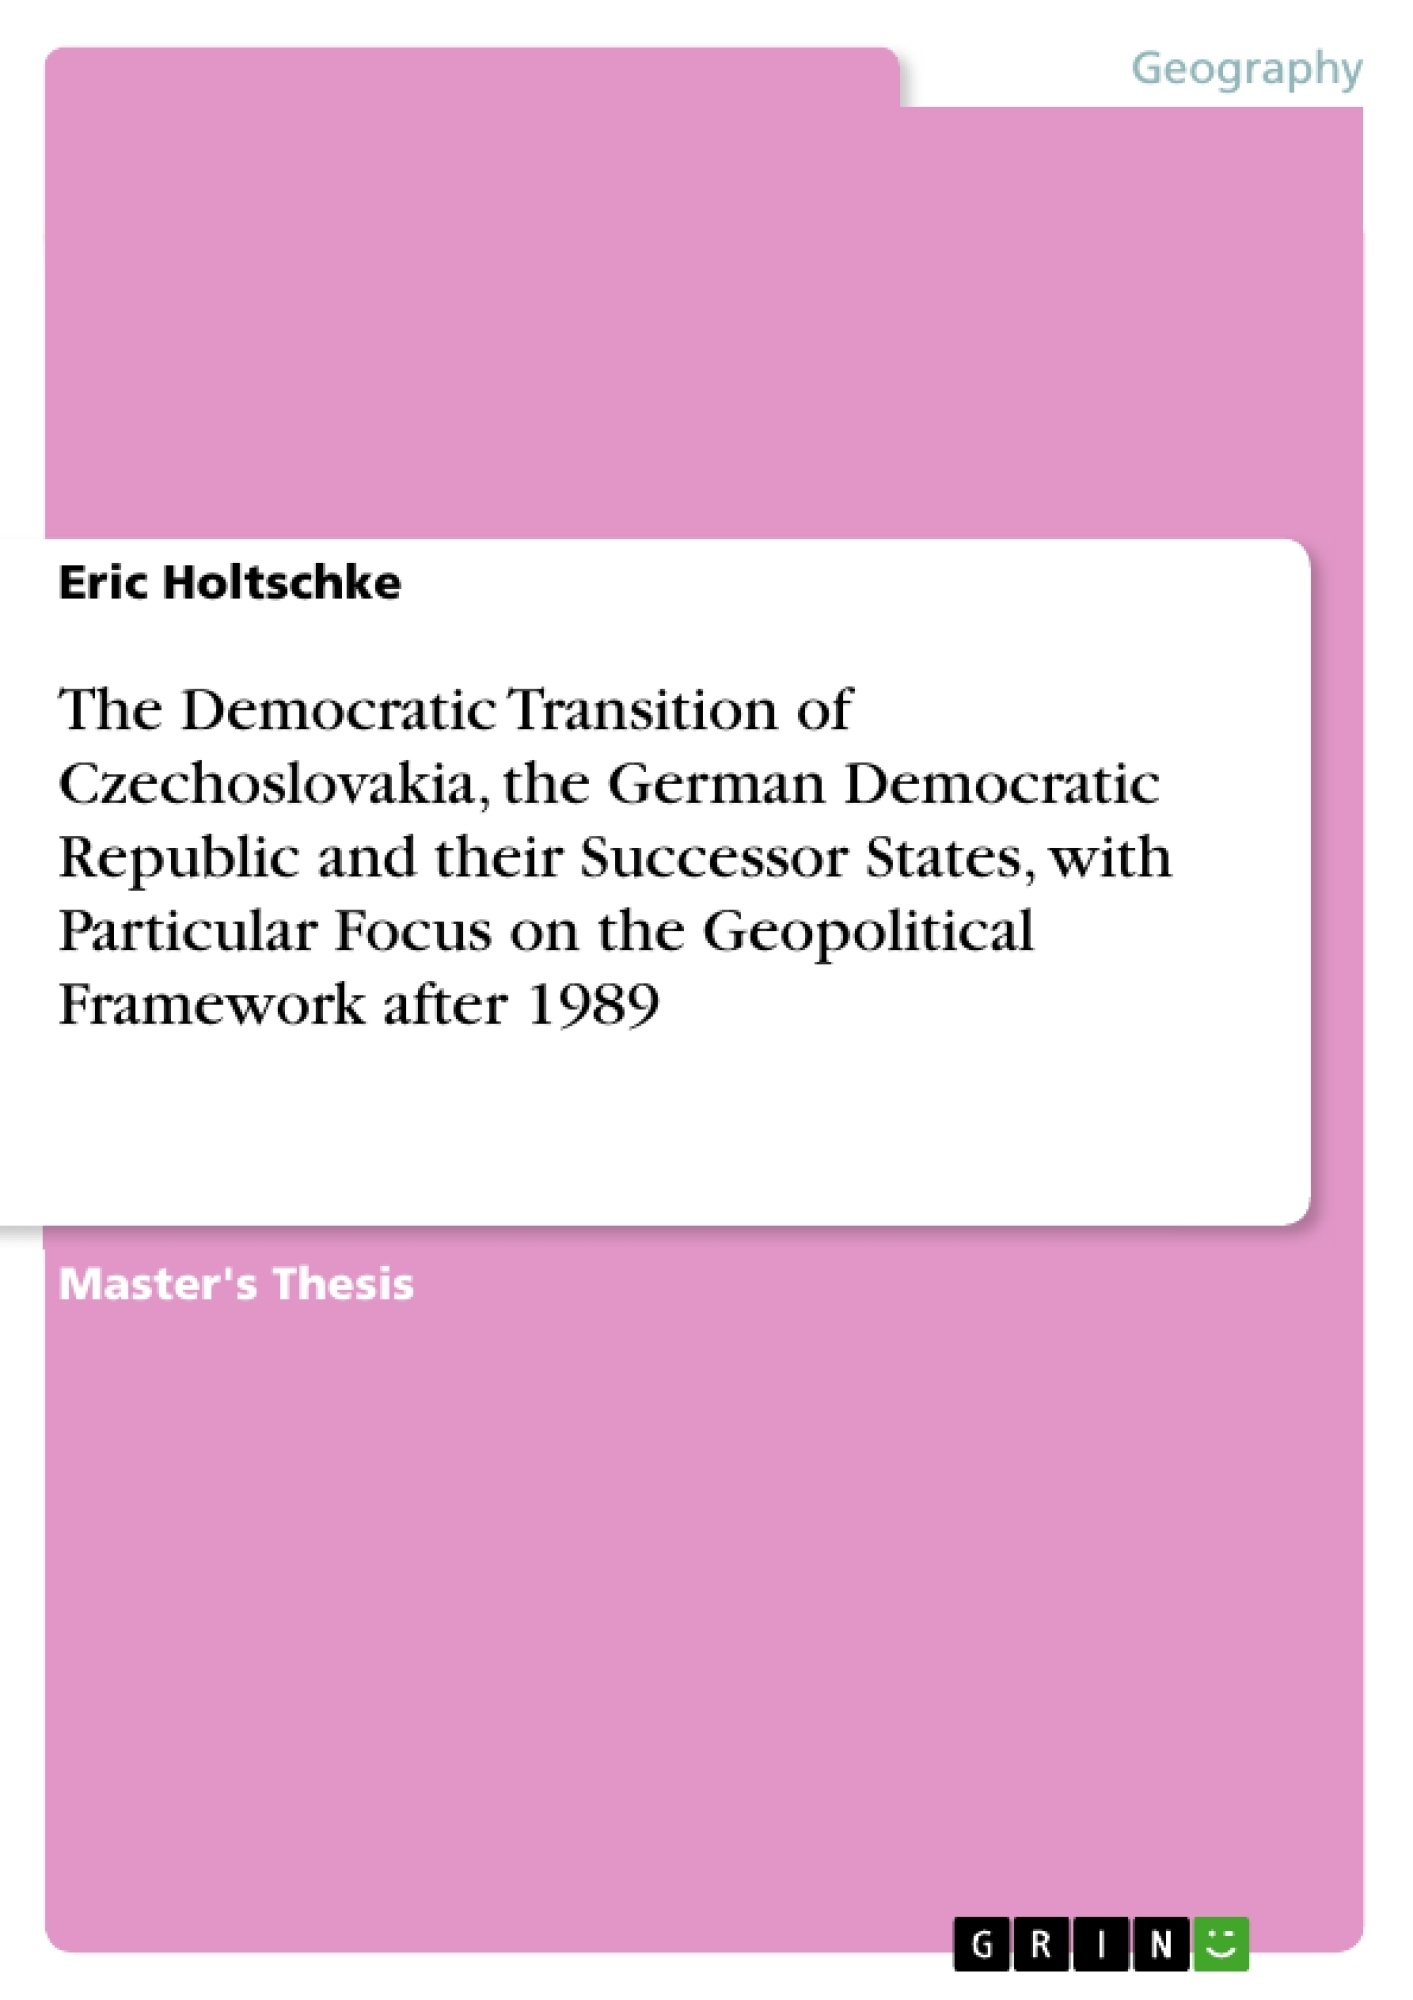 Title: The Democratic Transition of Czechoslovakia, the German Democratic Republic and their Successor States, with Particular Focus on the Geopolitical Framework after 1989